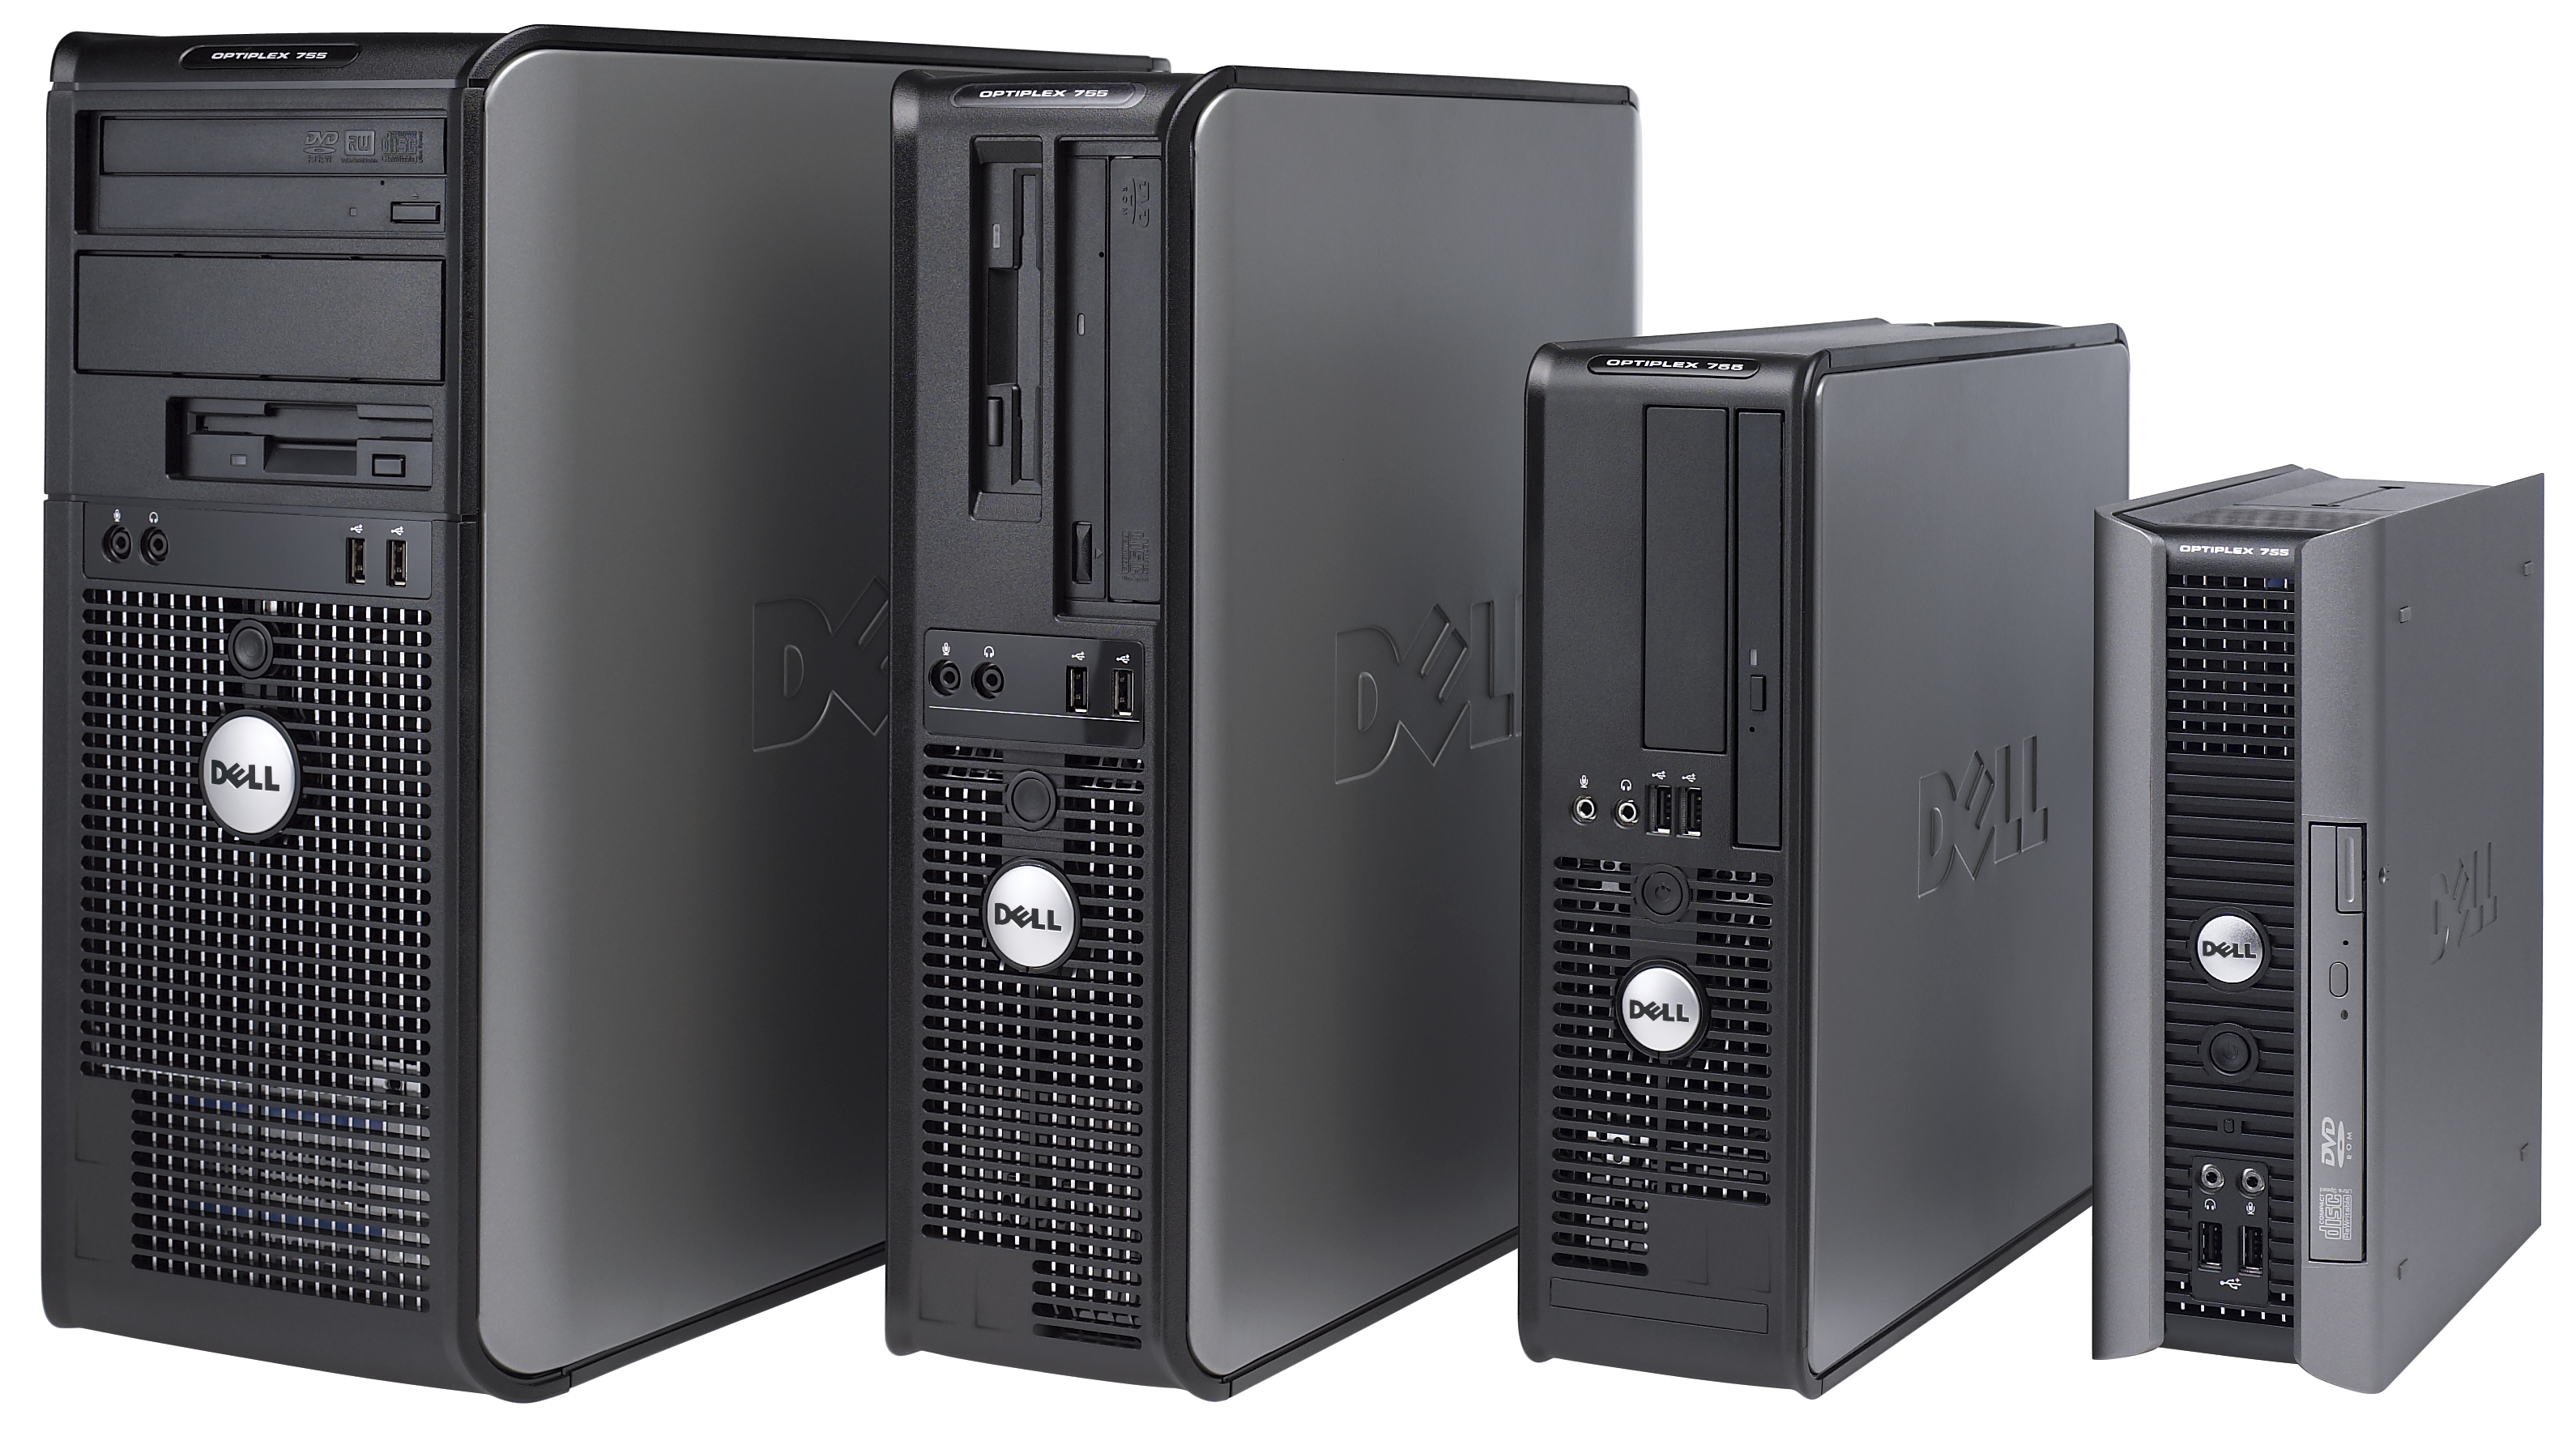 Optiplex 780techguide further 281736240836 moreover Dell Optiplex 755 Desktop  puter No Os additionally 151733591191 further 381935027506. on dell optiplex 790 mini tower